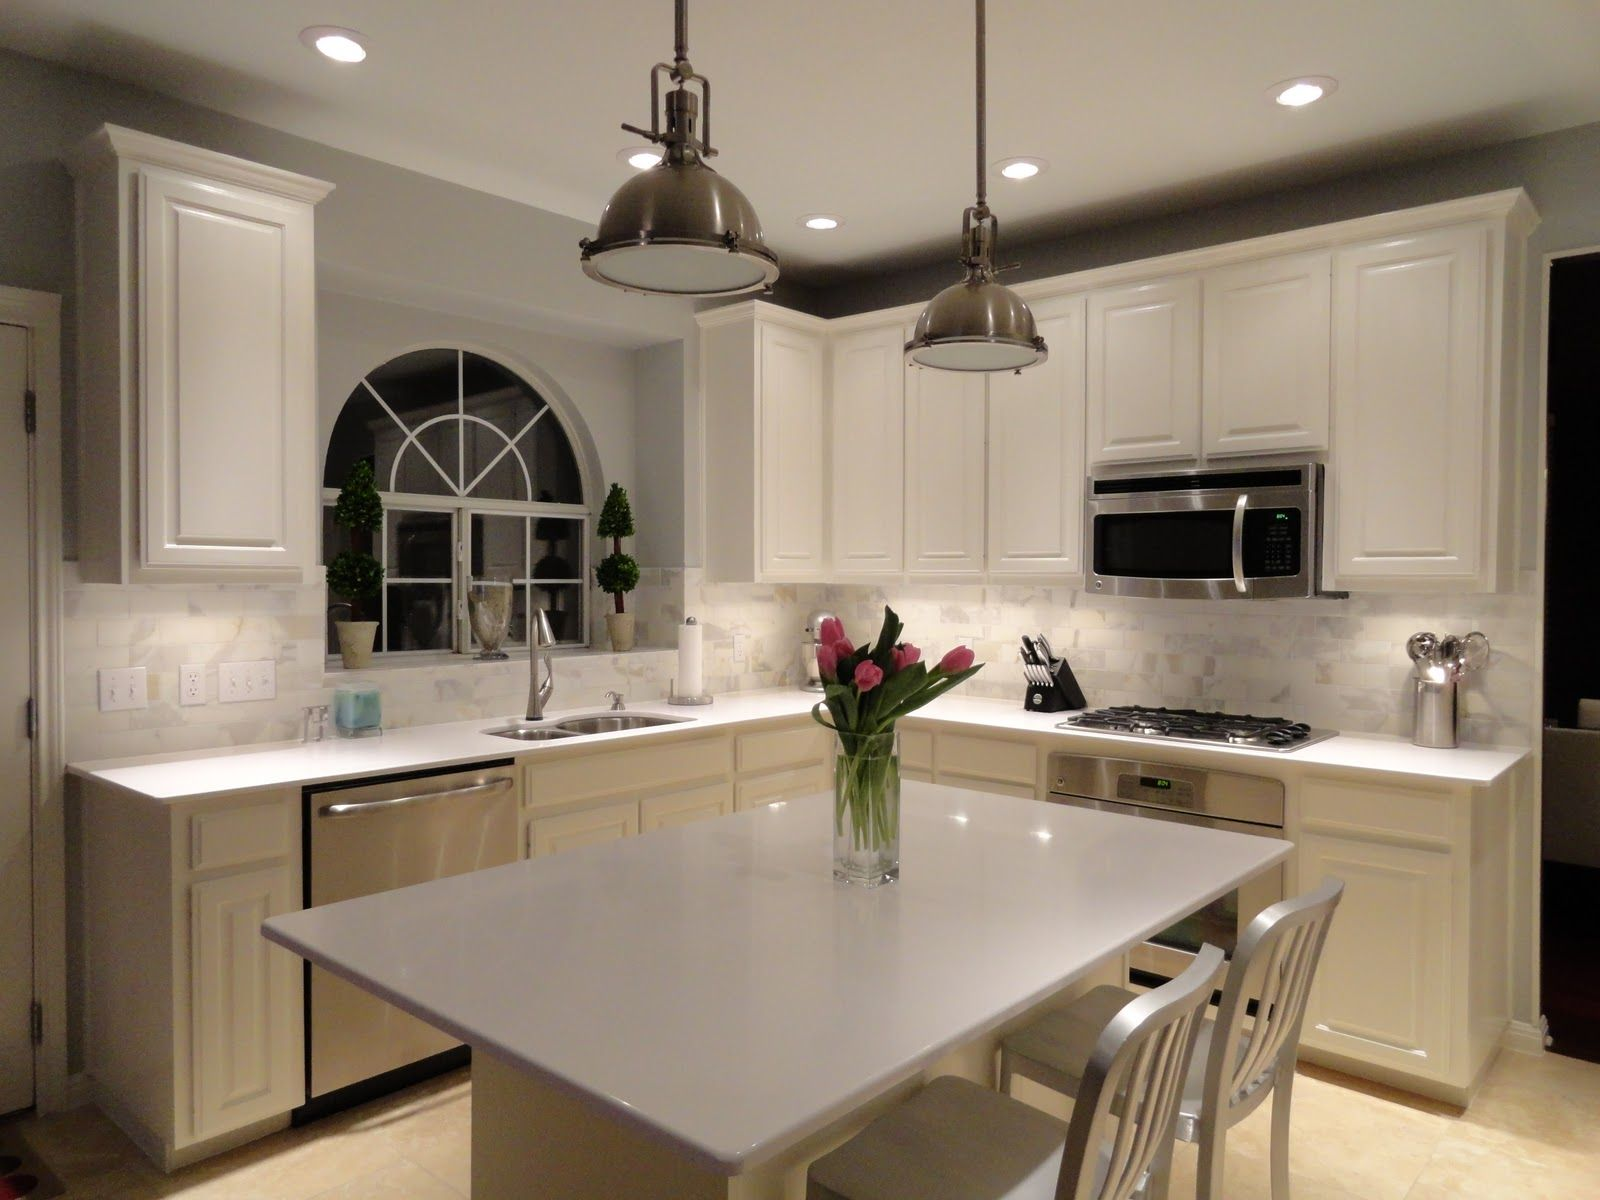 Cygnus Silestone On White Cabinets We Had The Cabinets